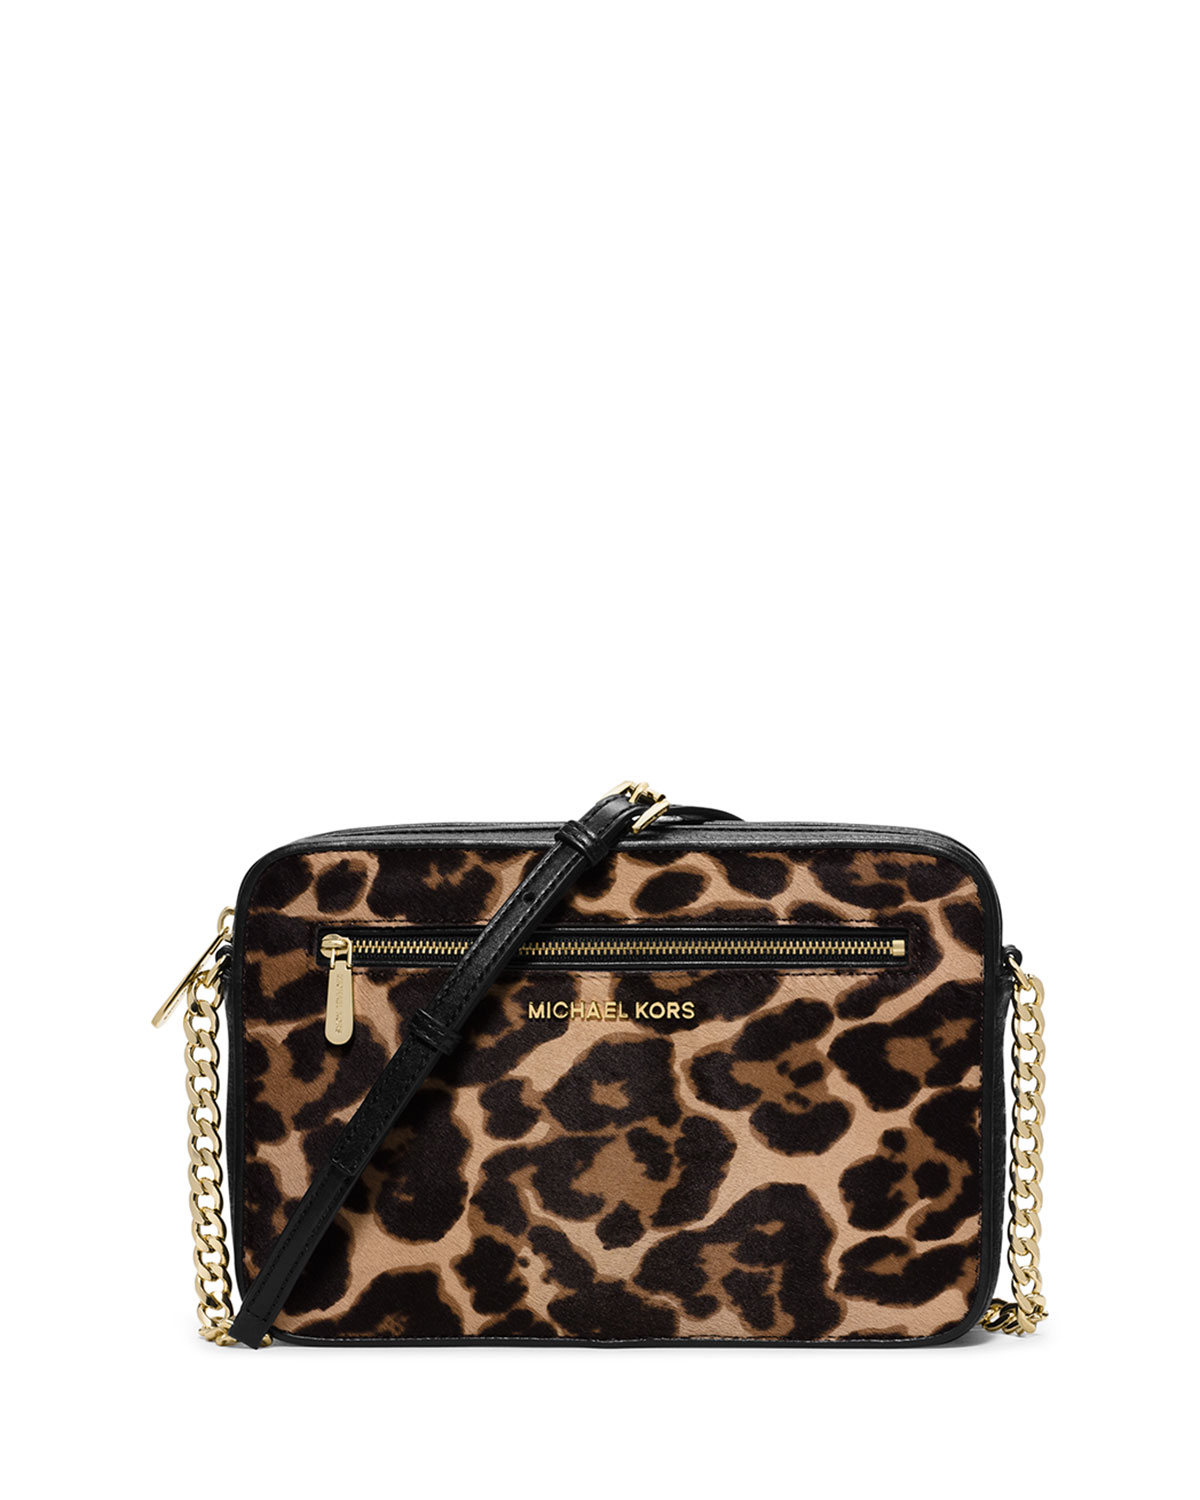 Jet Set Large Cheetah Print Calf Hair Crossbody Bag